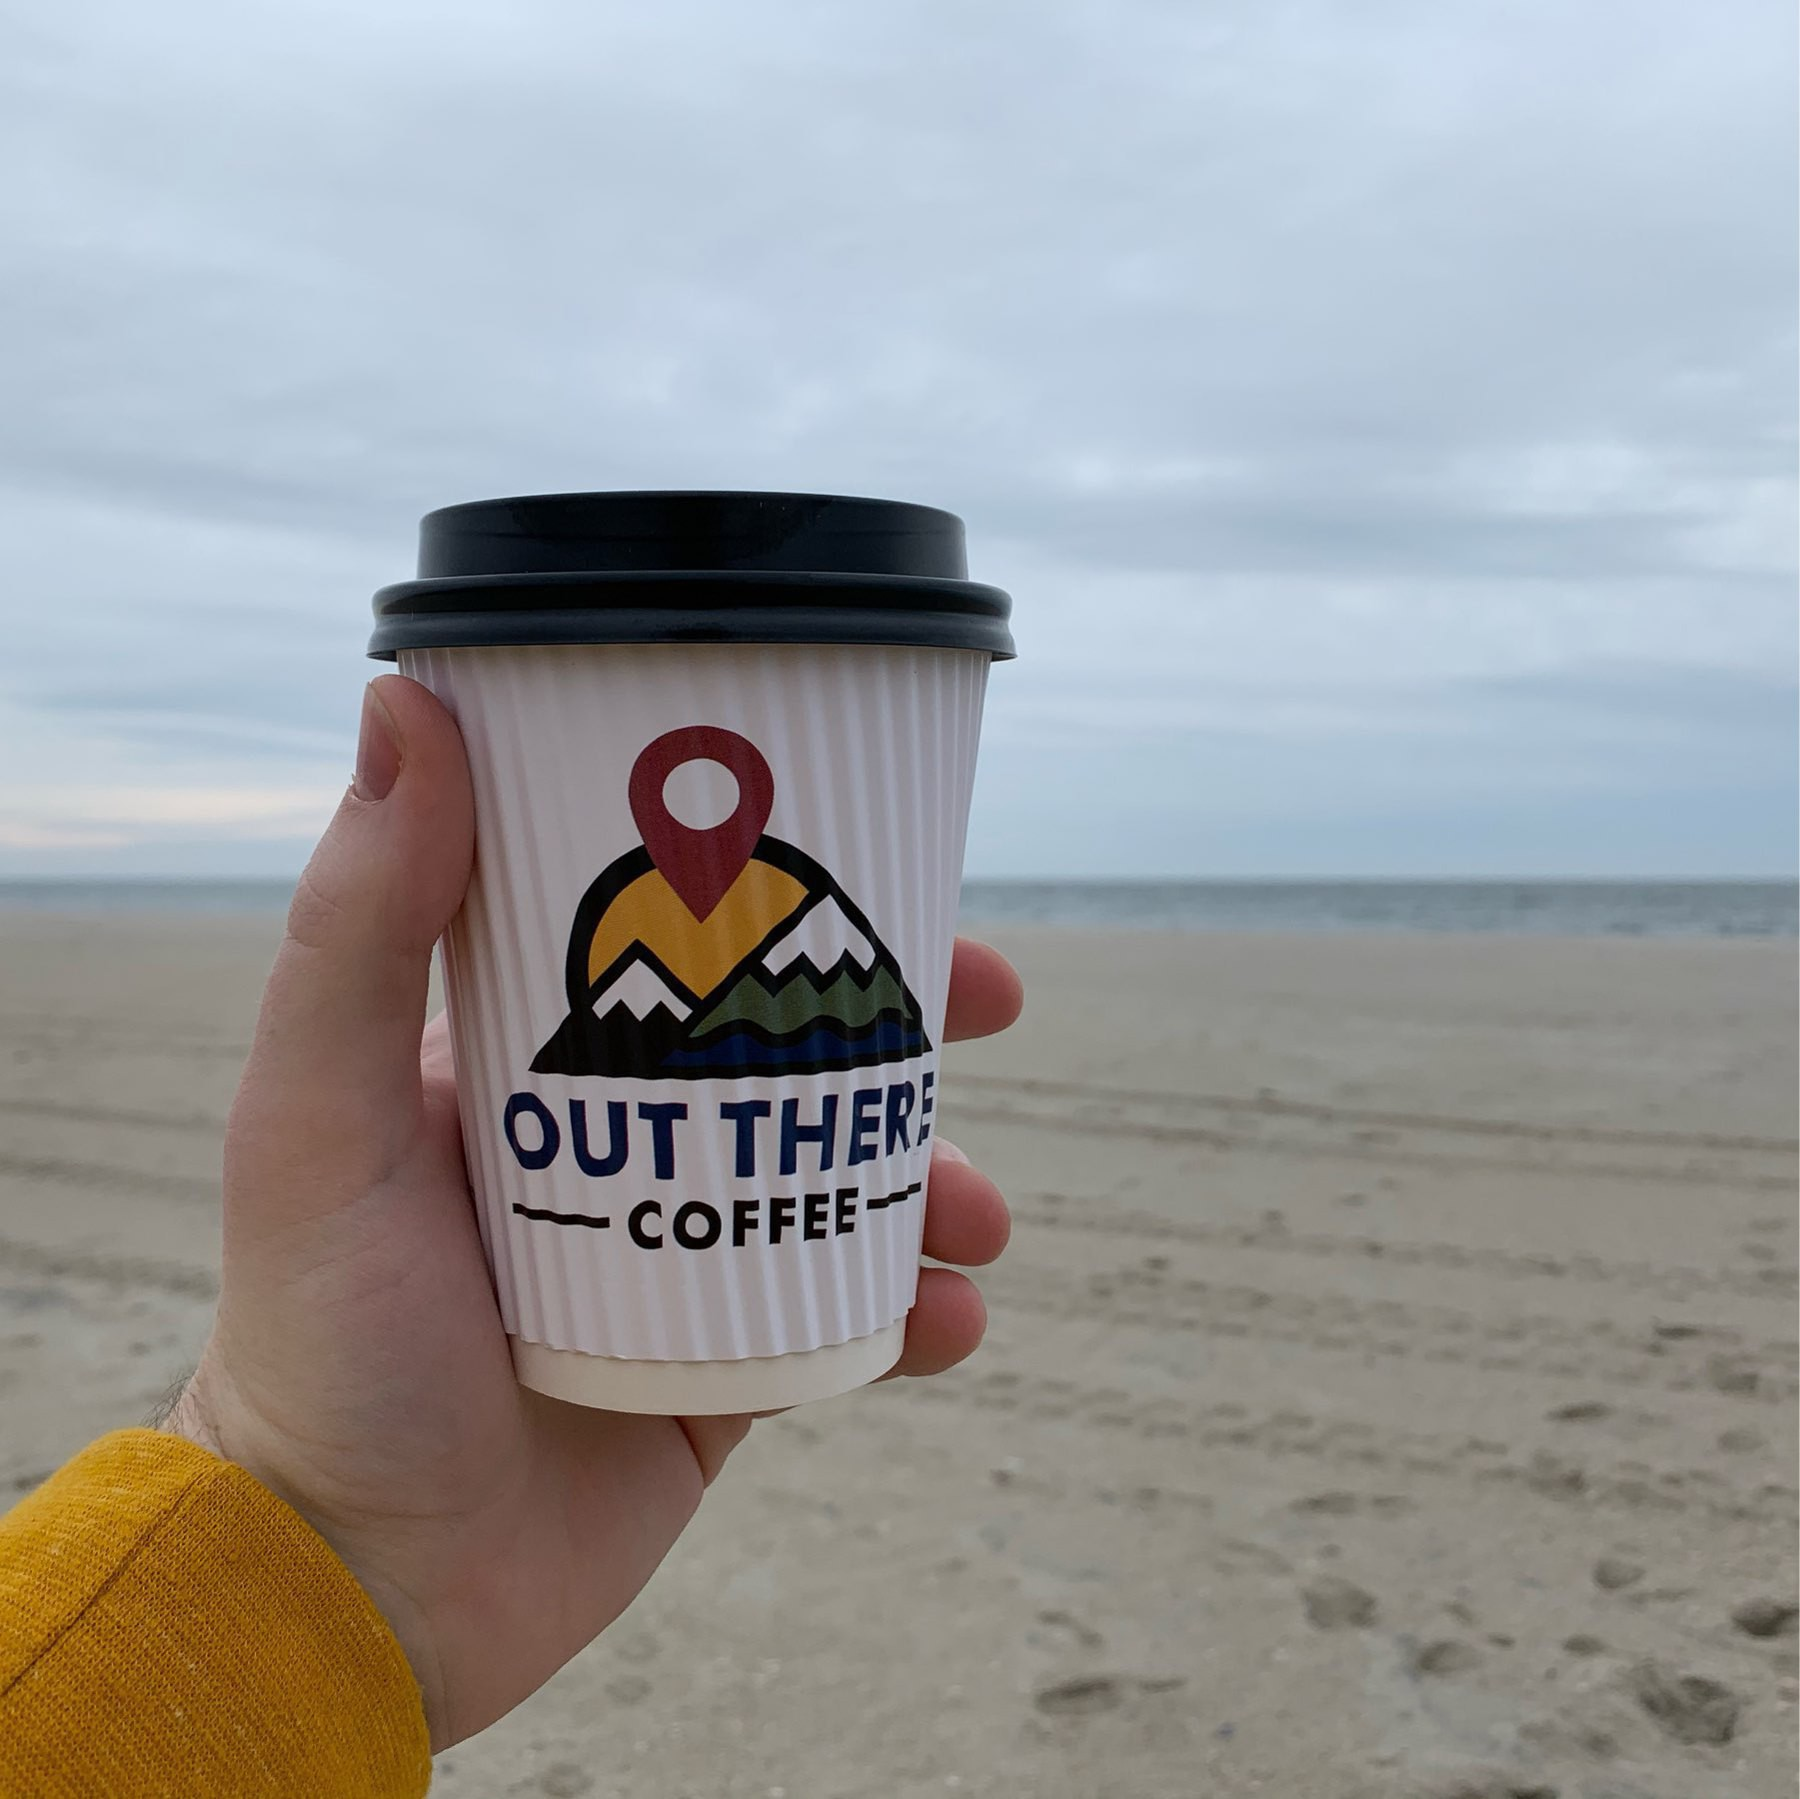 Coffee cup in foreground, Atlantic Ocean in the background.